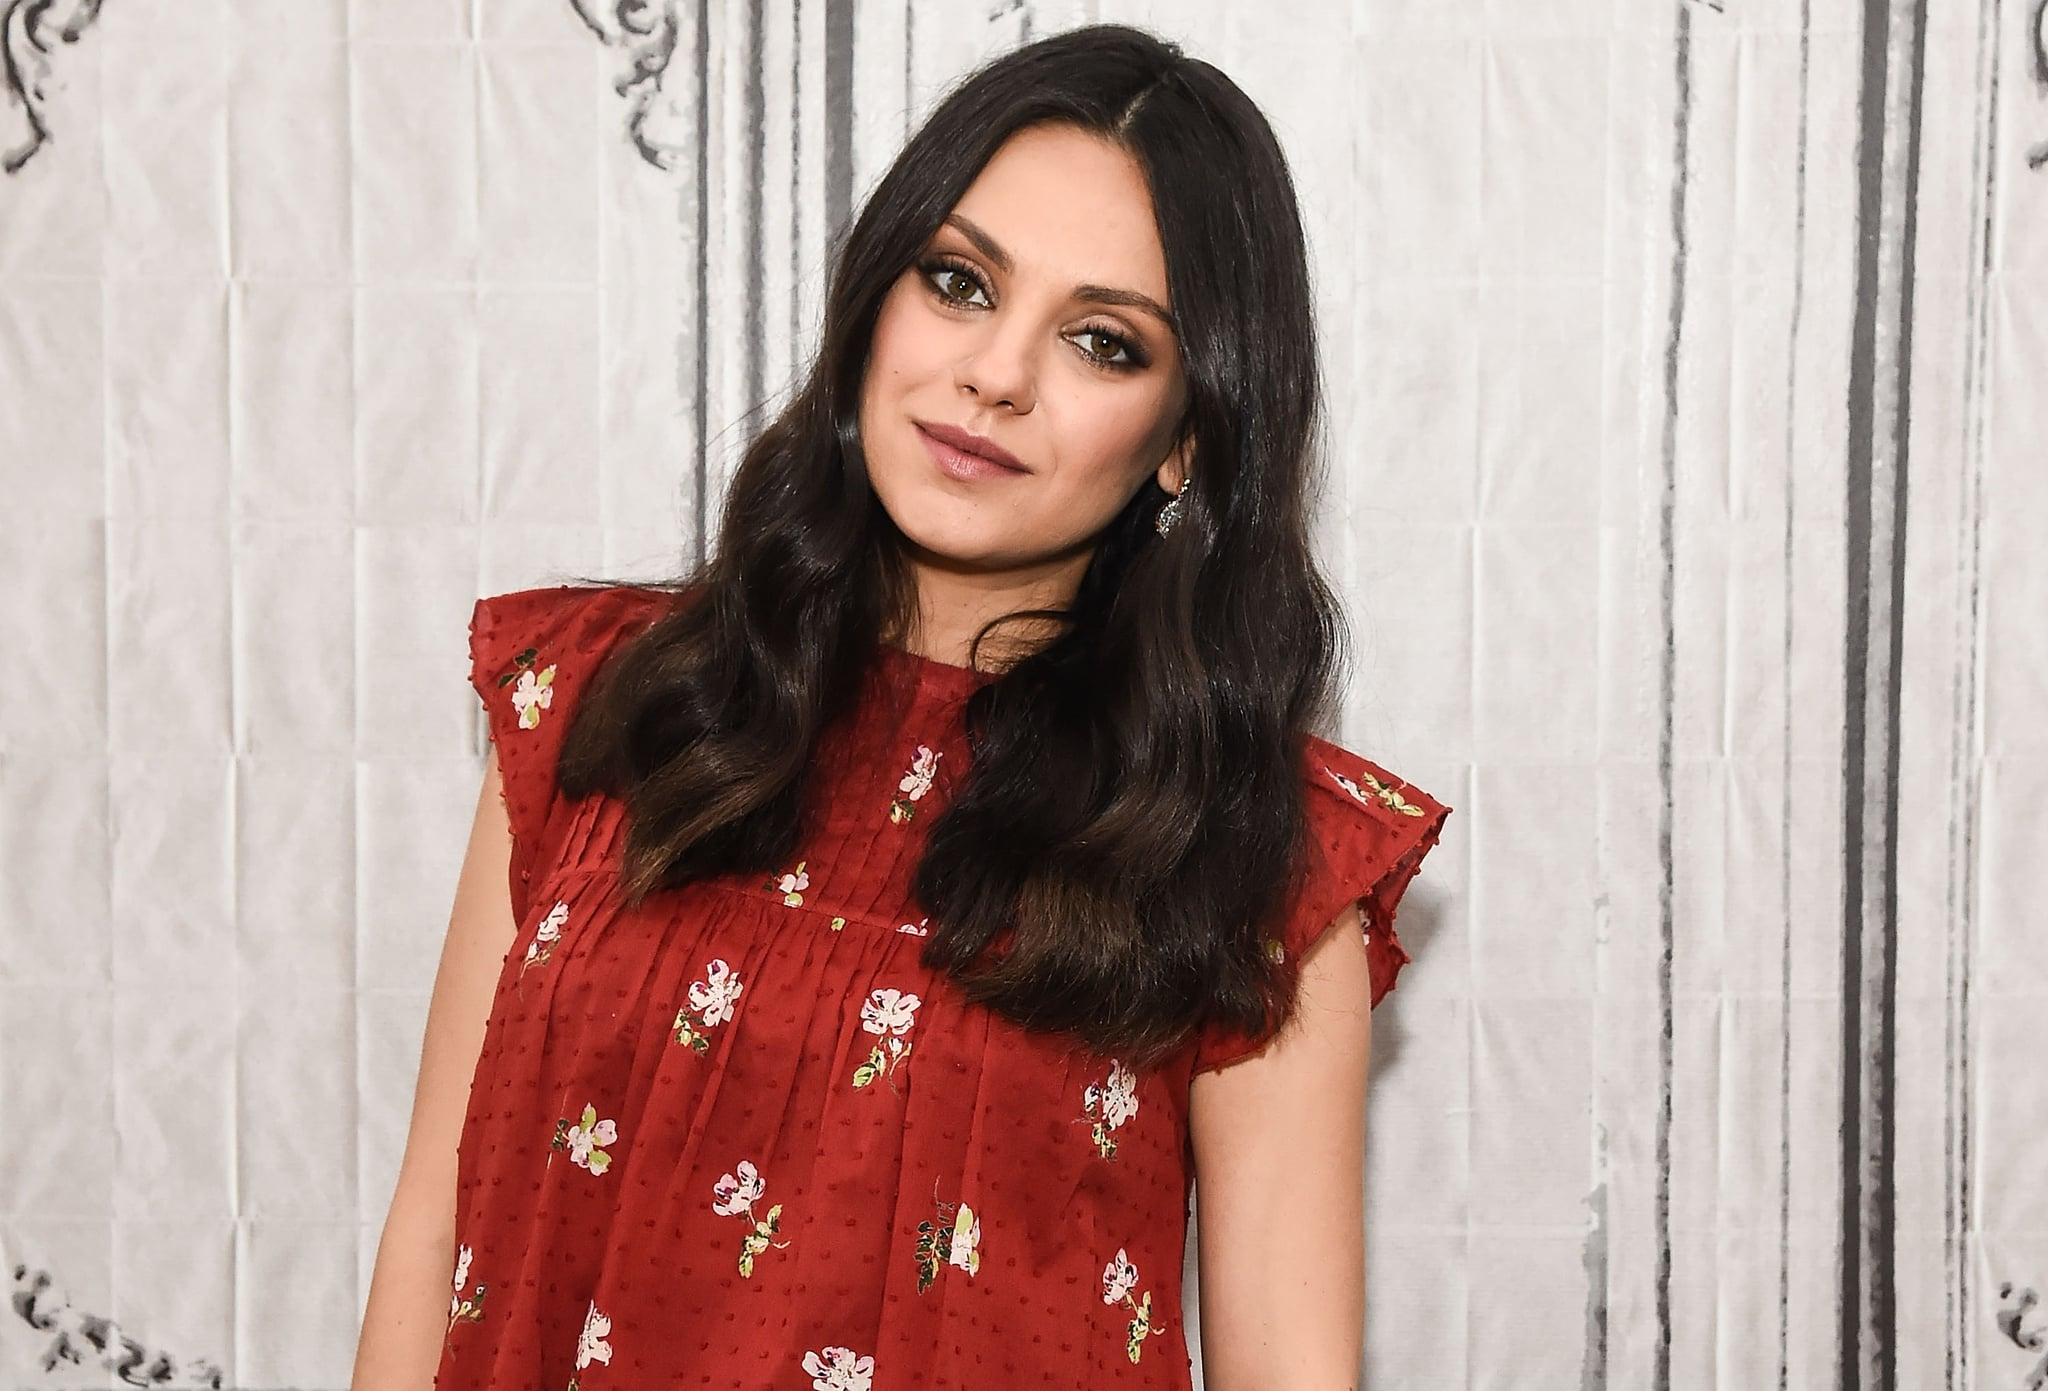 mila kunis s essay about gender bias popsugar share this link